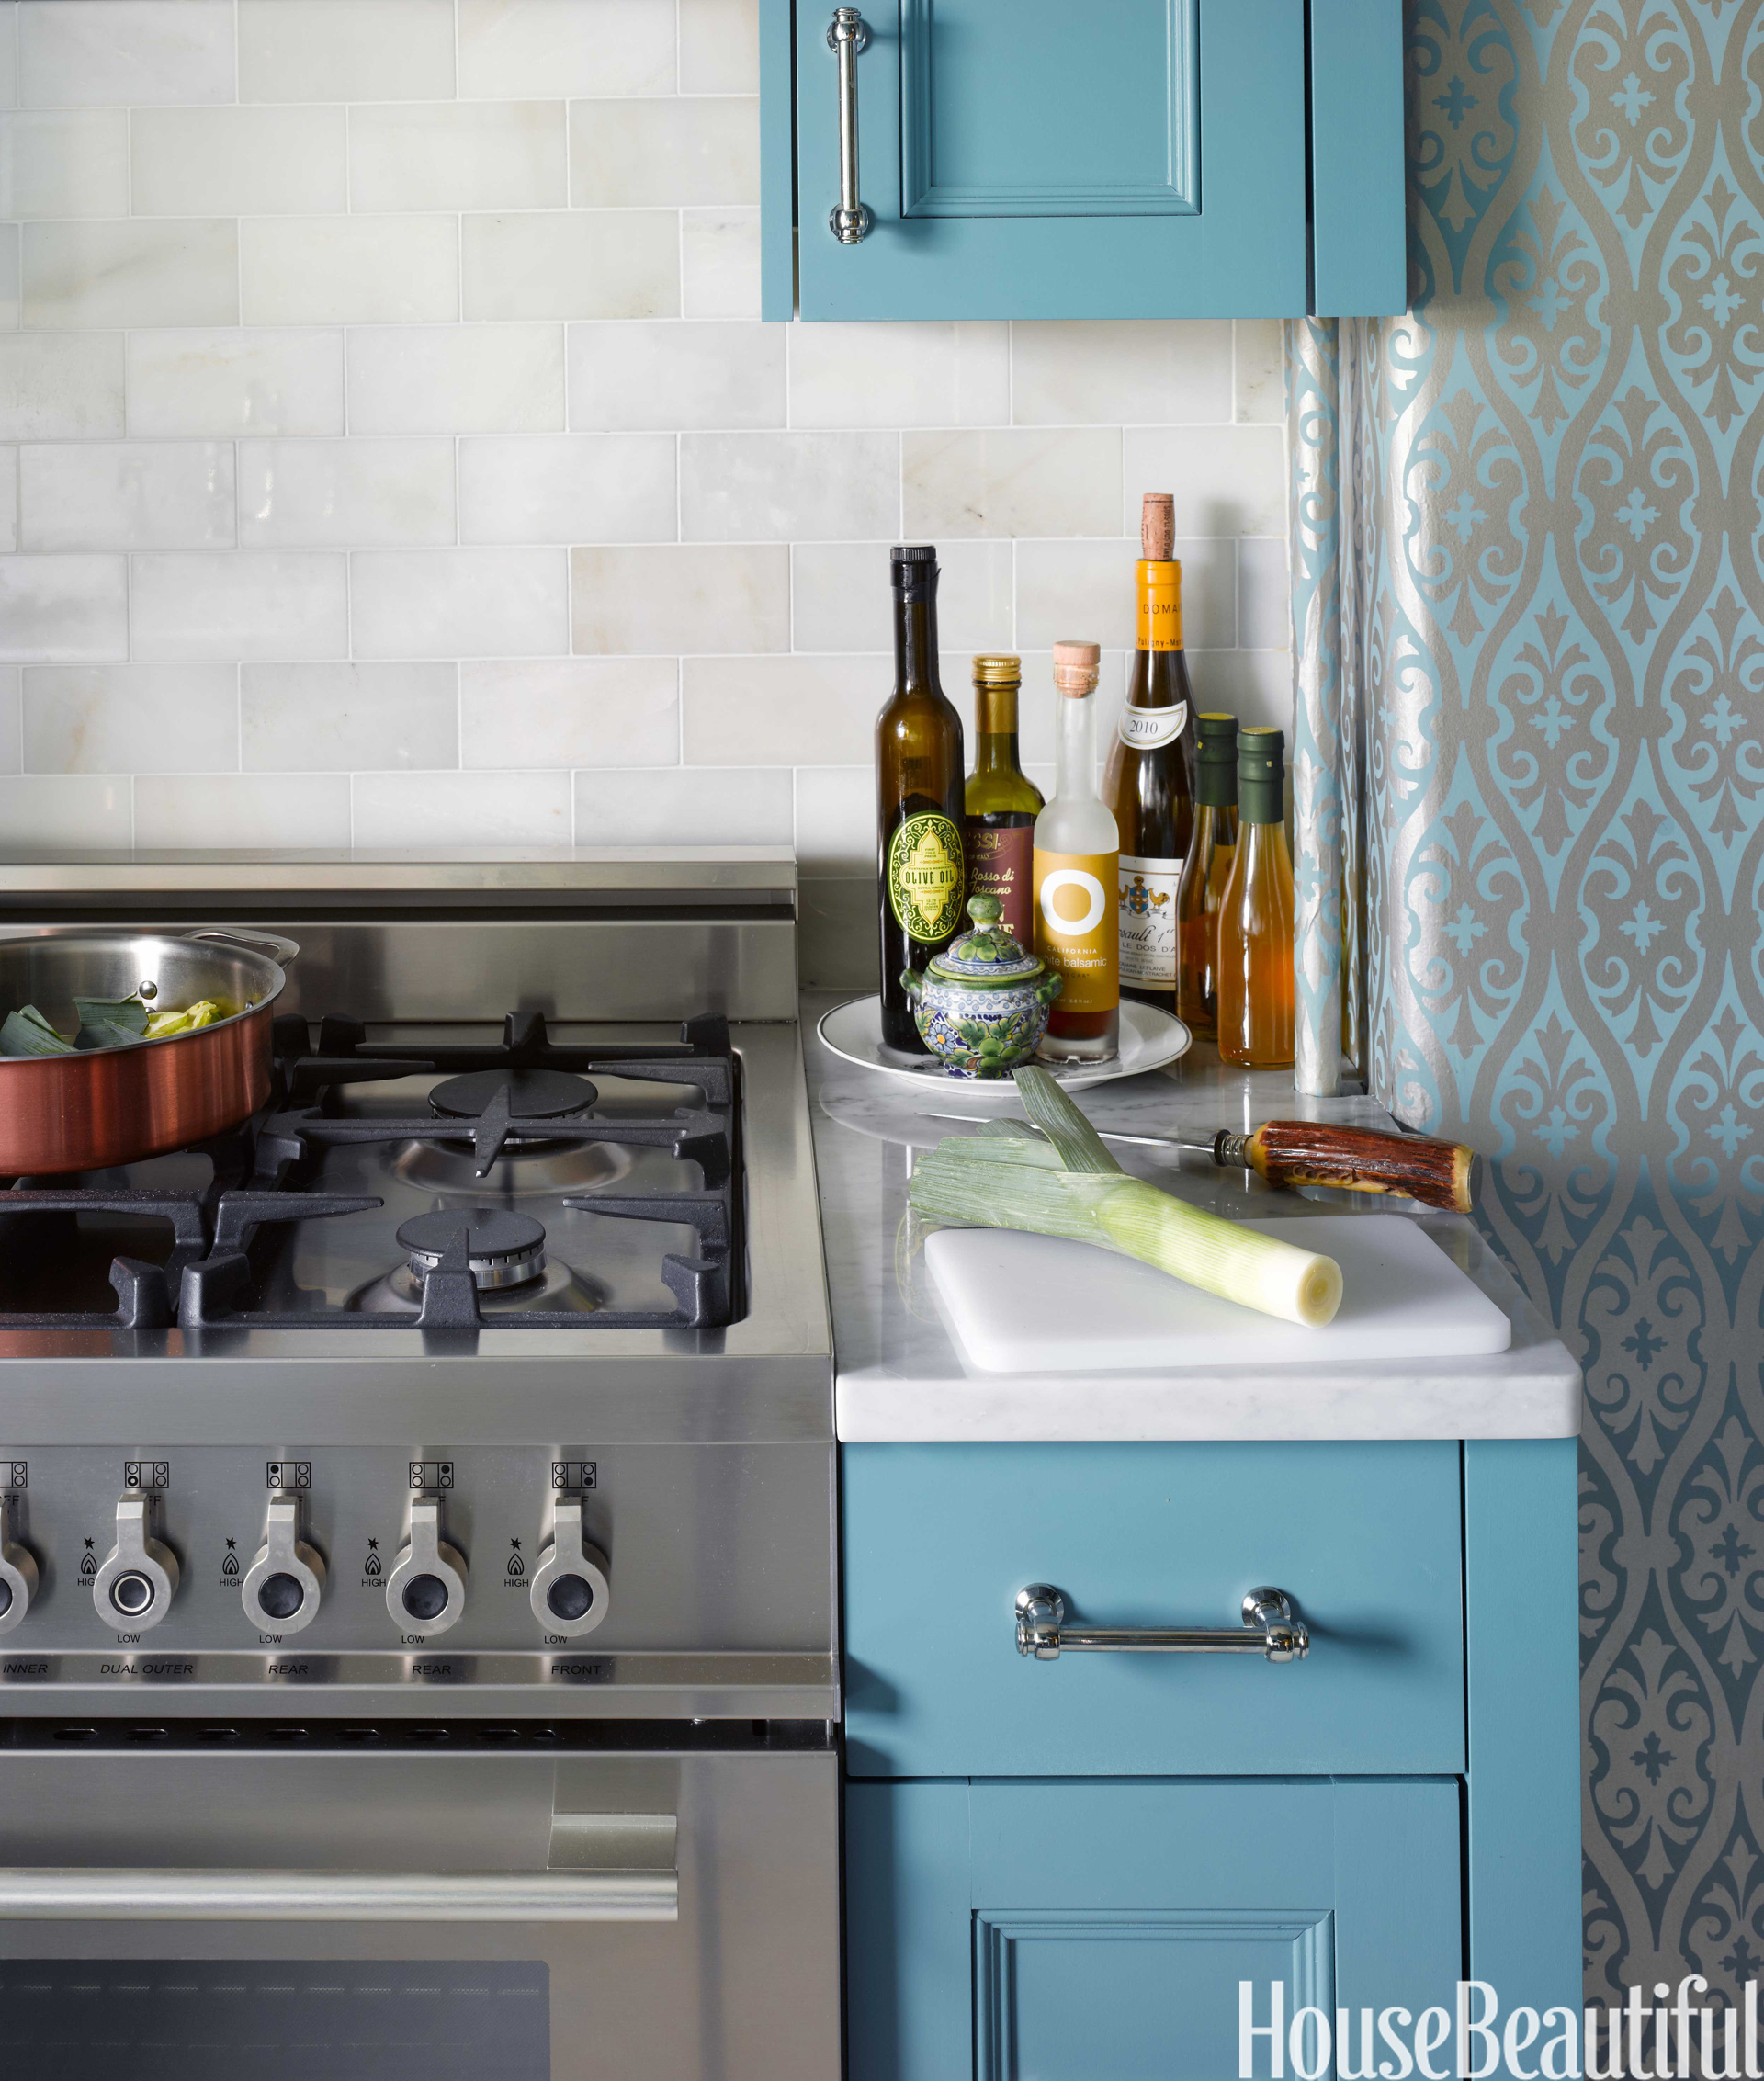 Kitchen Cabinets New York City: Small Kitchen Design Tips